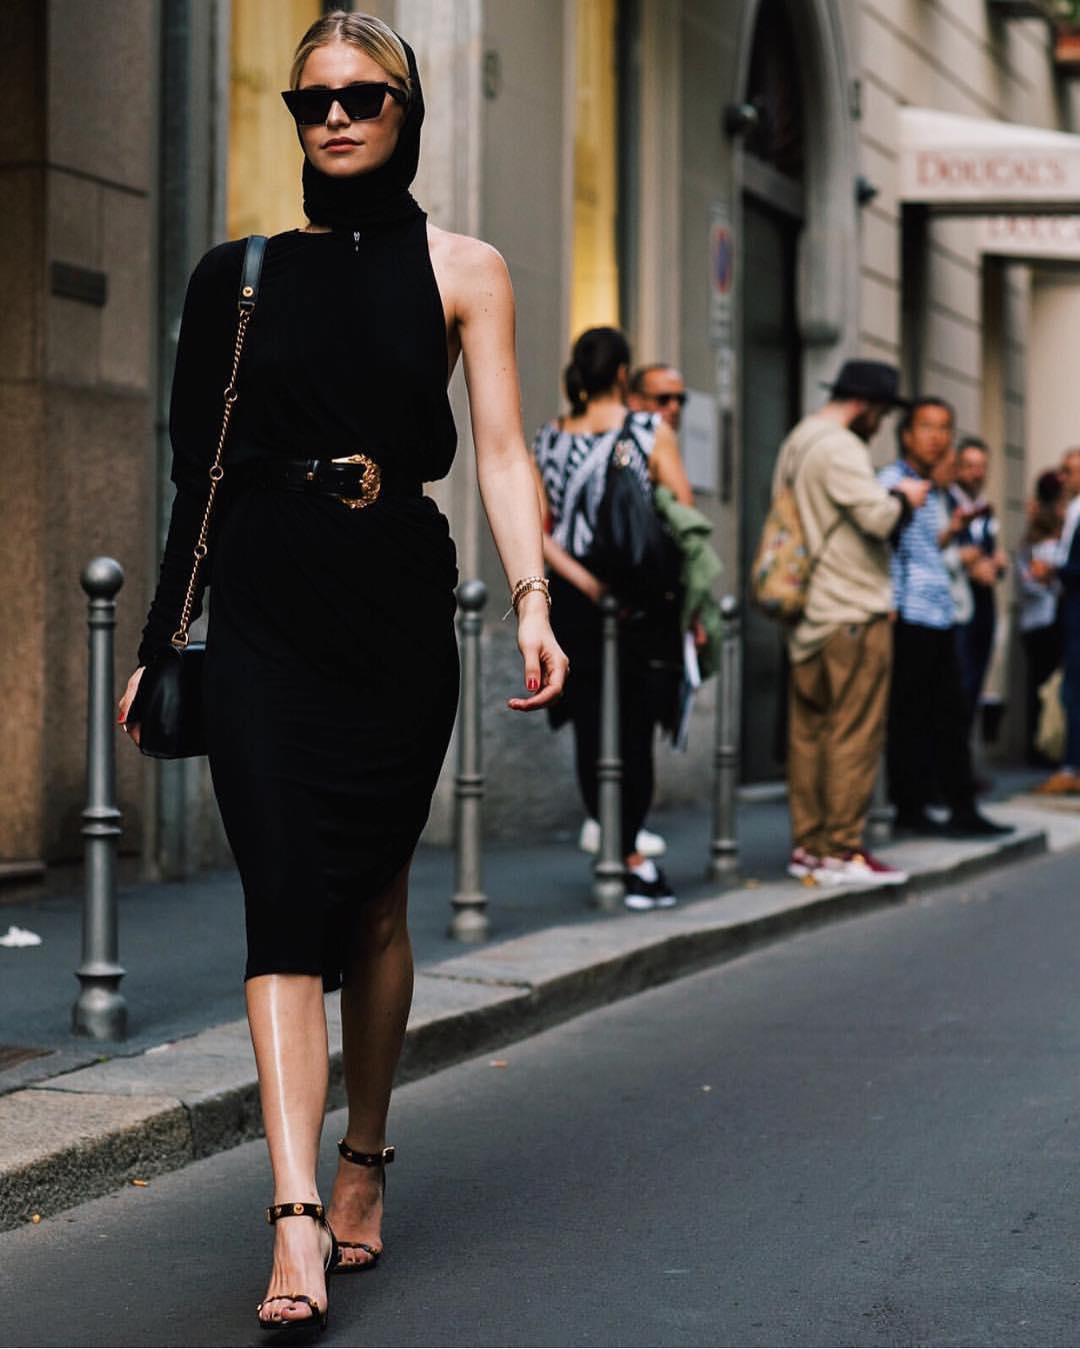 One Sleeve Black Dress For Spring Parisian Chic Walk 2019